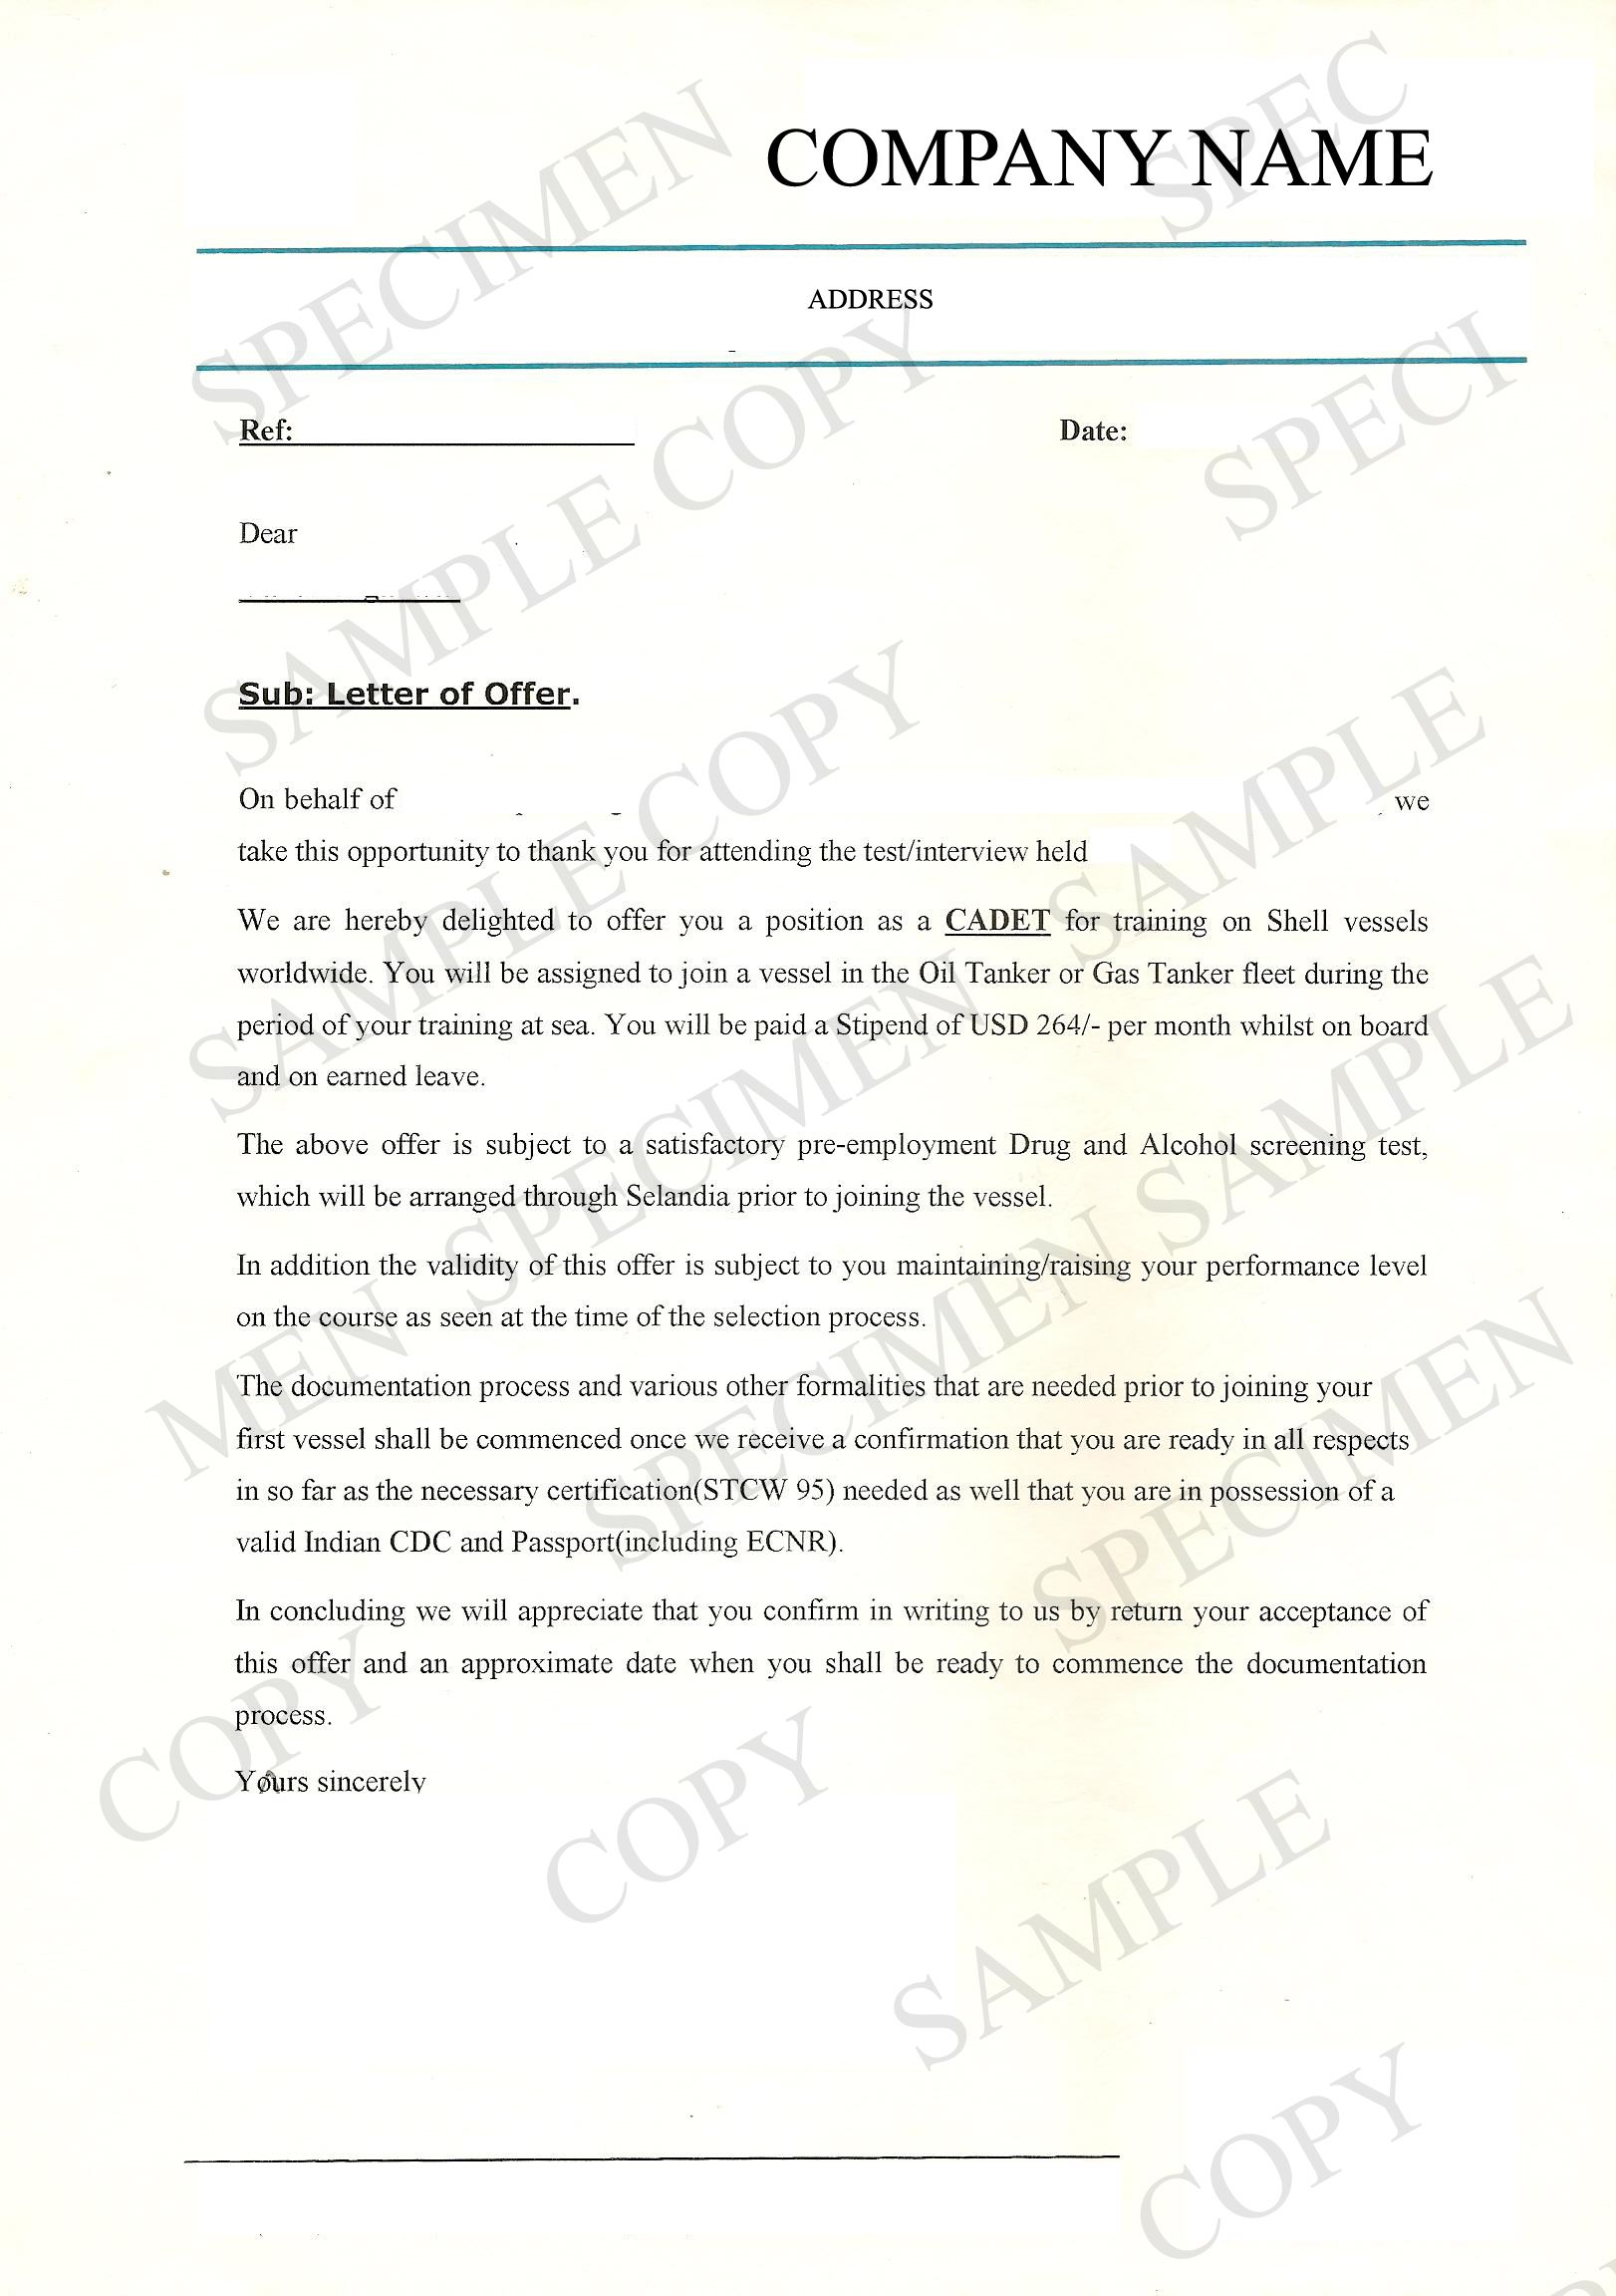 Appointment letter templates free sample example format confirmation appointment letter templates free sample example format confirmation for employee malaysia cover reminder template spiritdancerdesigns Image collections